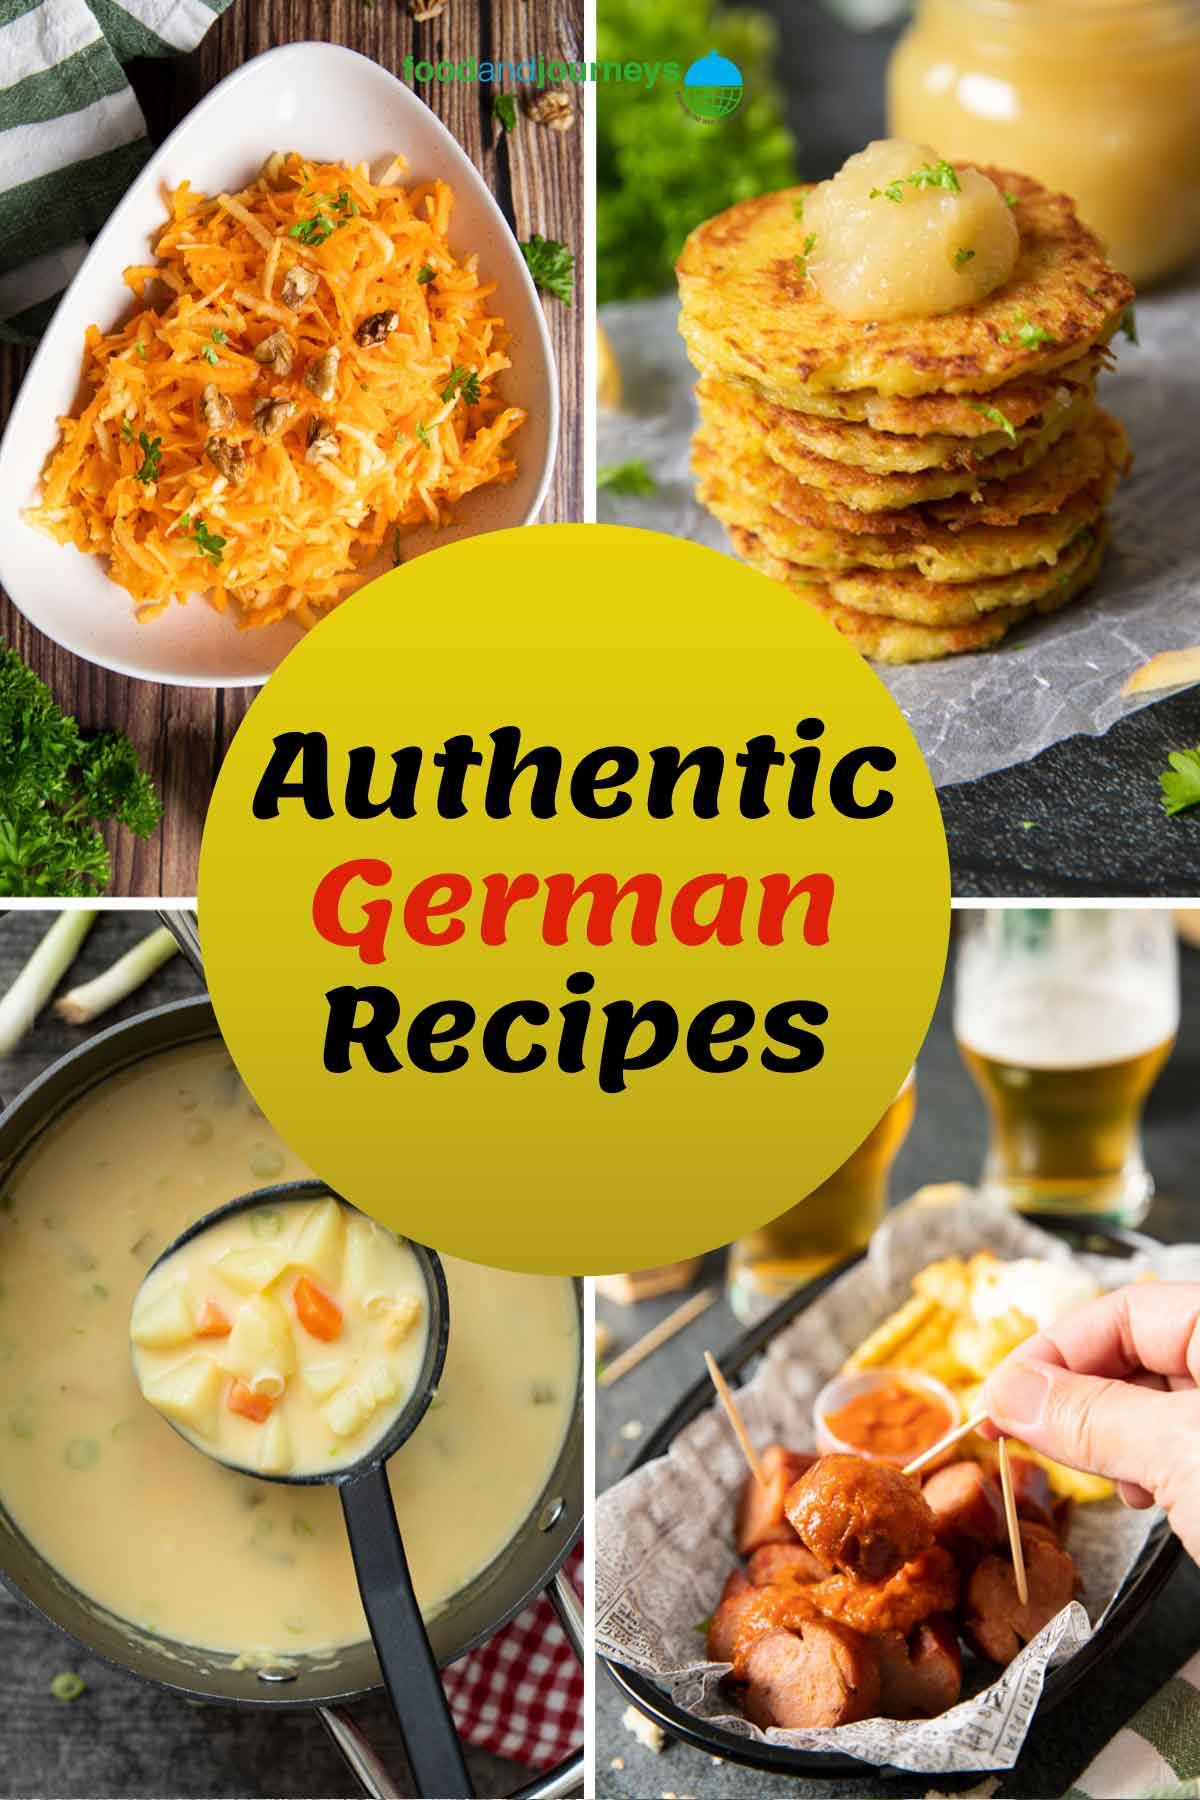 Latest cover for Authentic German Recipes Post (Oct 2021), showing a collage of classic German dishes.